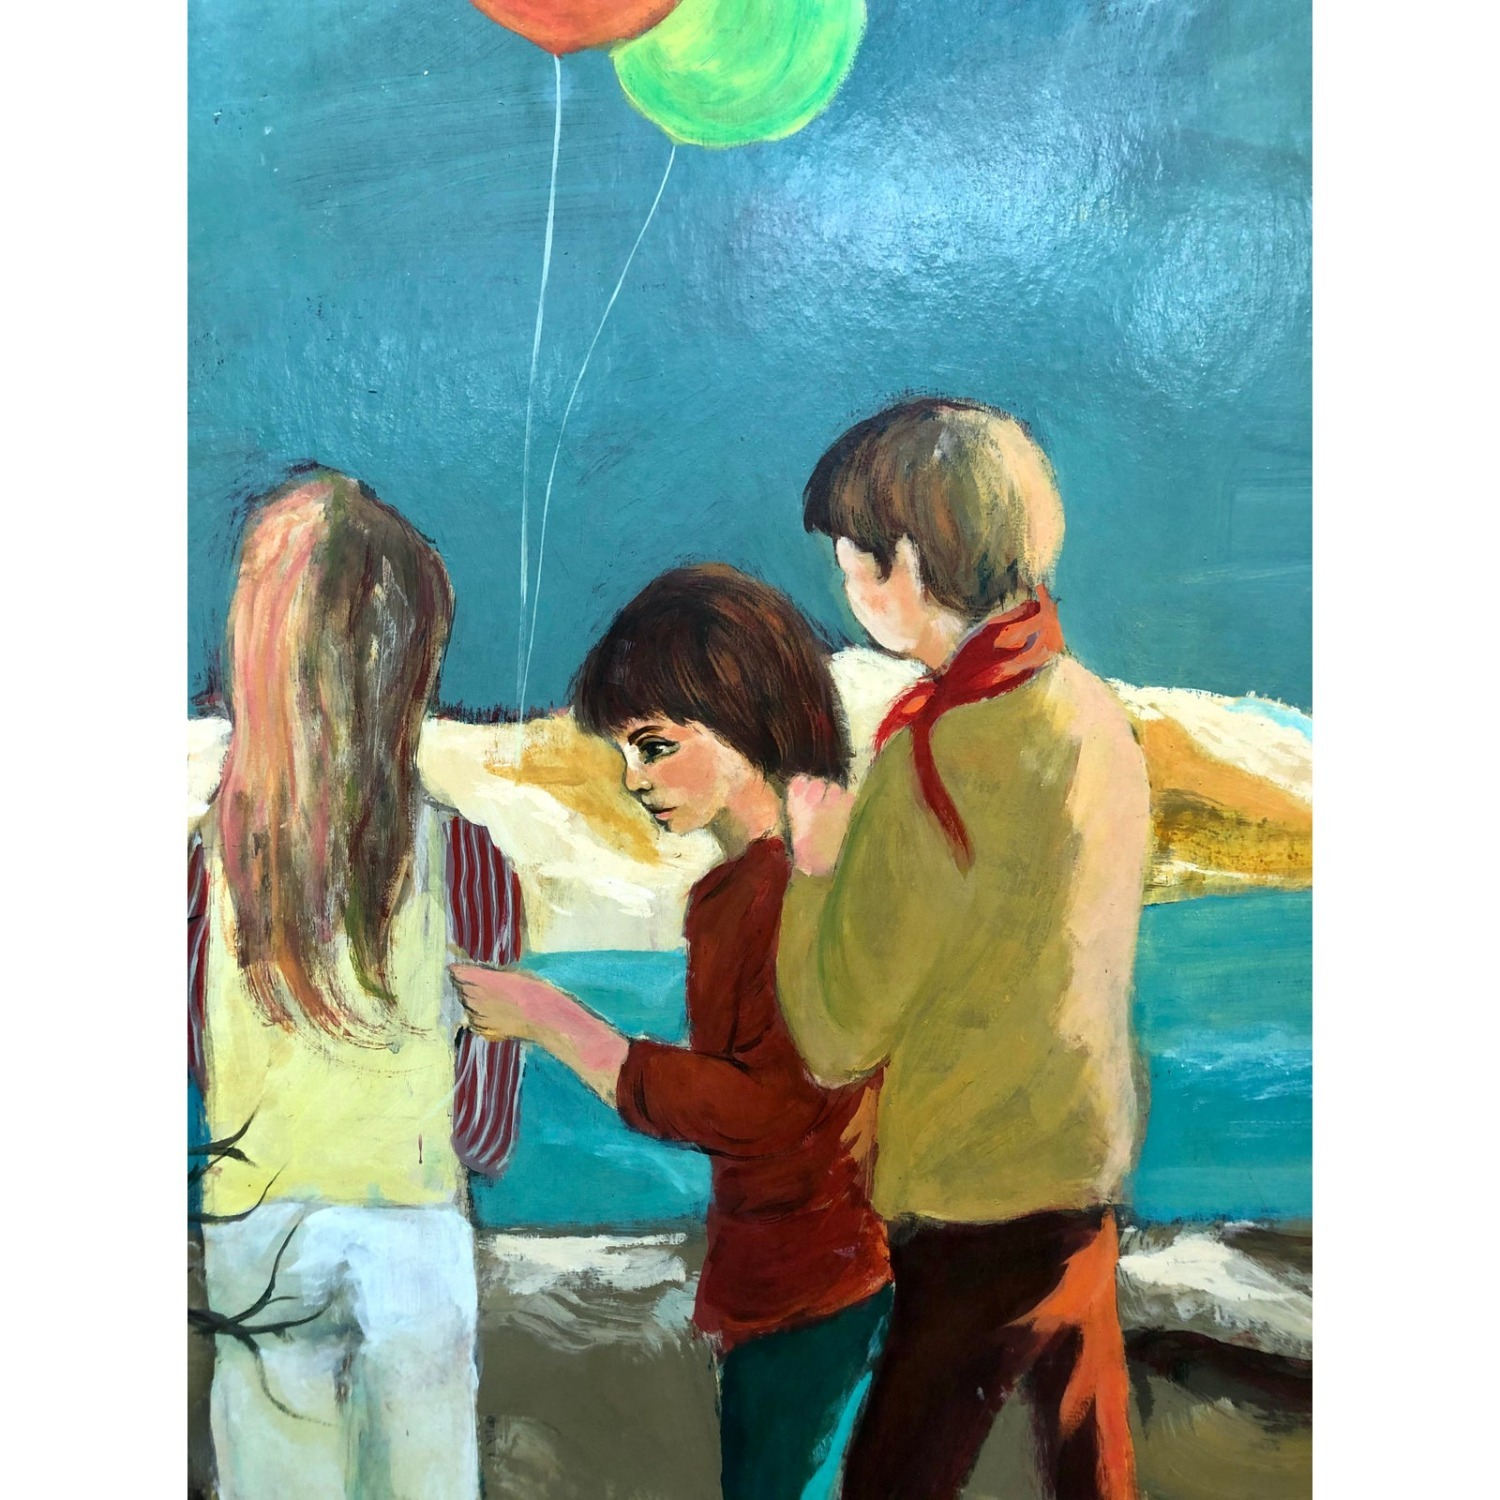 Cape Cod Children Vintage 1970s Painting - image-5